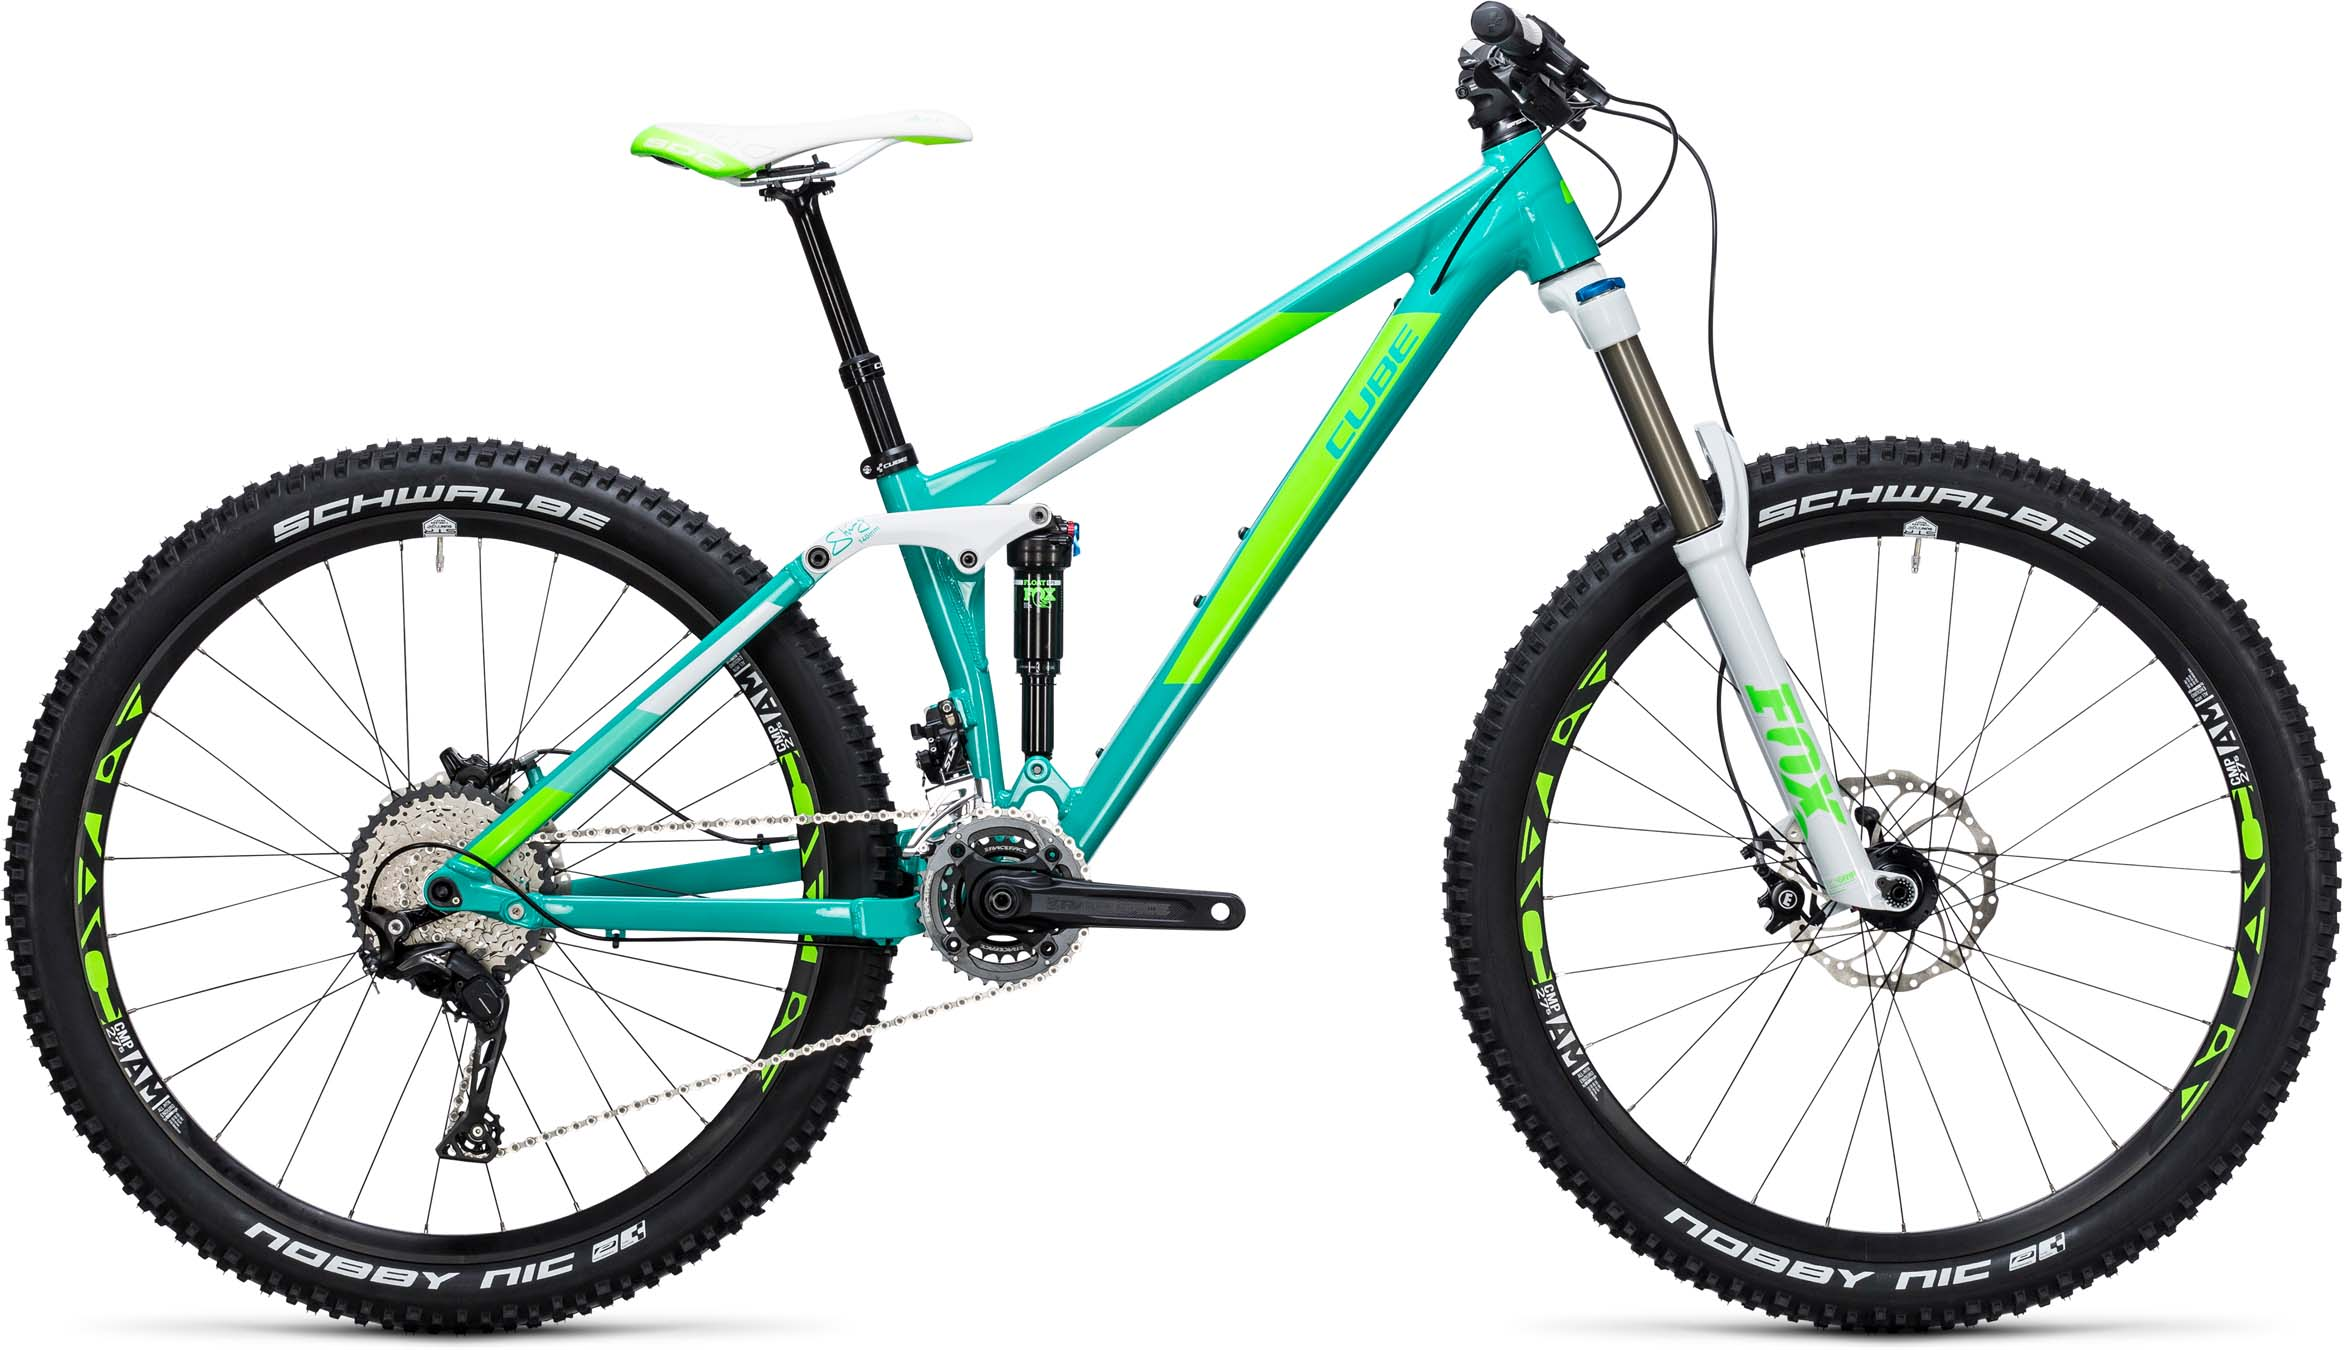 mountainbikes fully bikes sale mhw bikes for all online shop for bikes. Black Bedroom Furniture Sets. Home Design Ideas